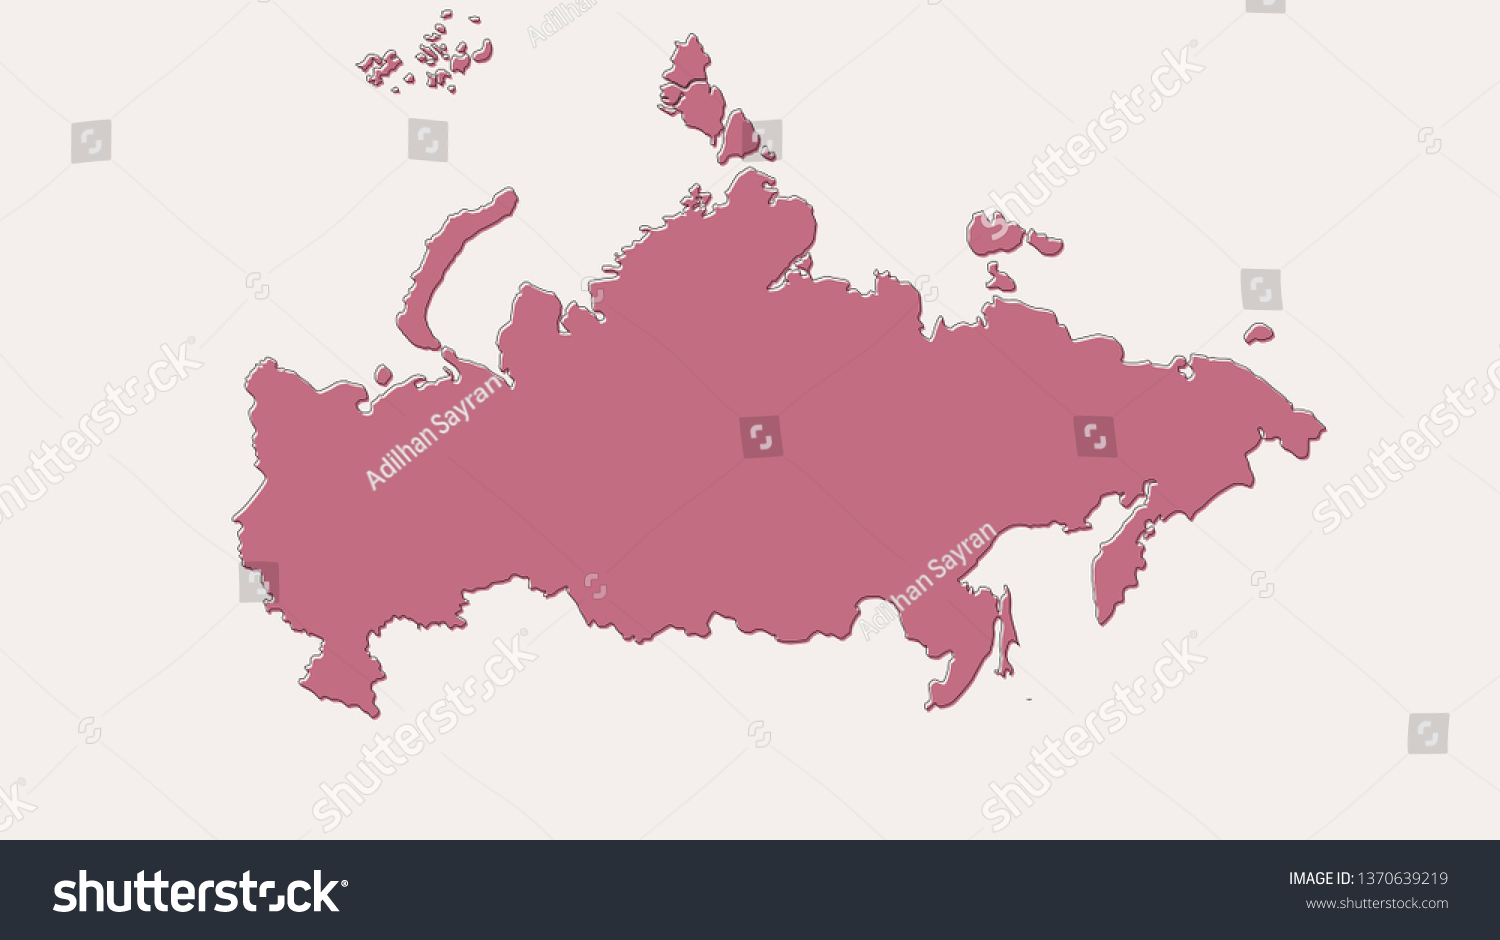 Abstract Flat Colorful Russia Map State Stock Vector ... on korea map, china map, poland map, australia map, united kingdom map, france map, iraq map, soviet union map, europe map, africa map, italy map, asia map, saudi arabia map, romania map, india map, baltic map, canada map, japan map, eurasia map, germany map,